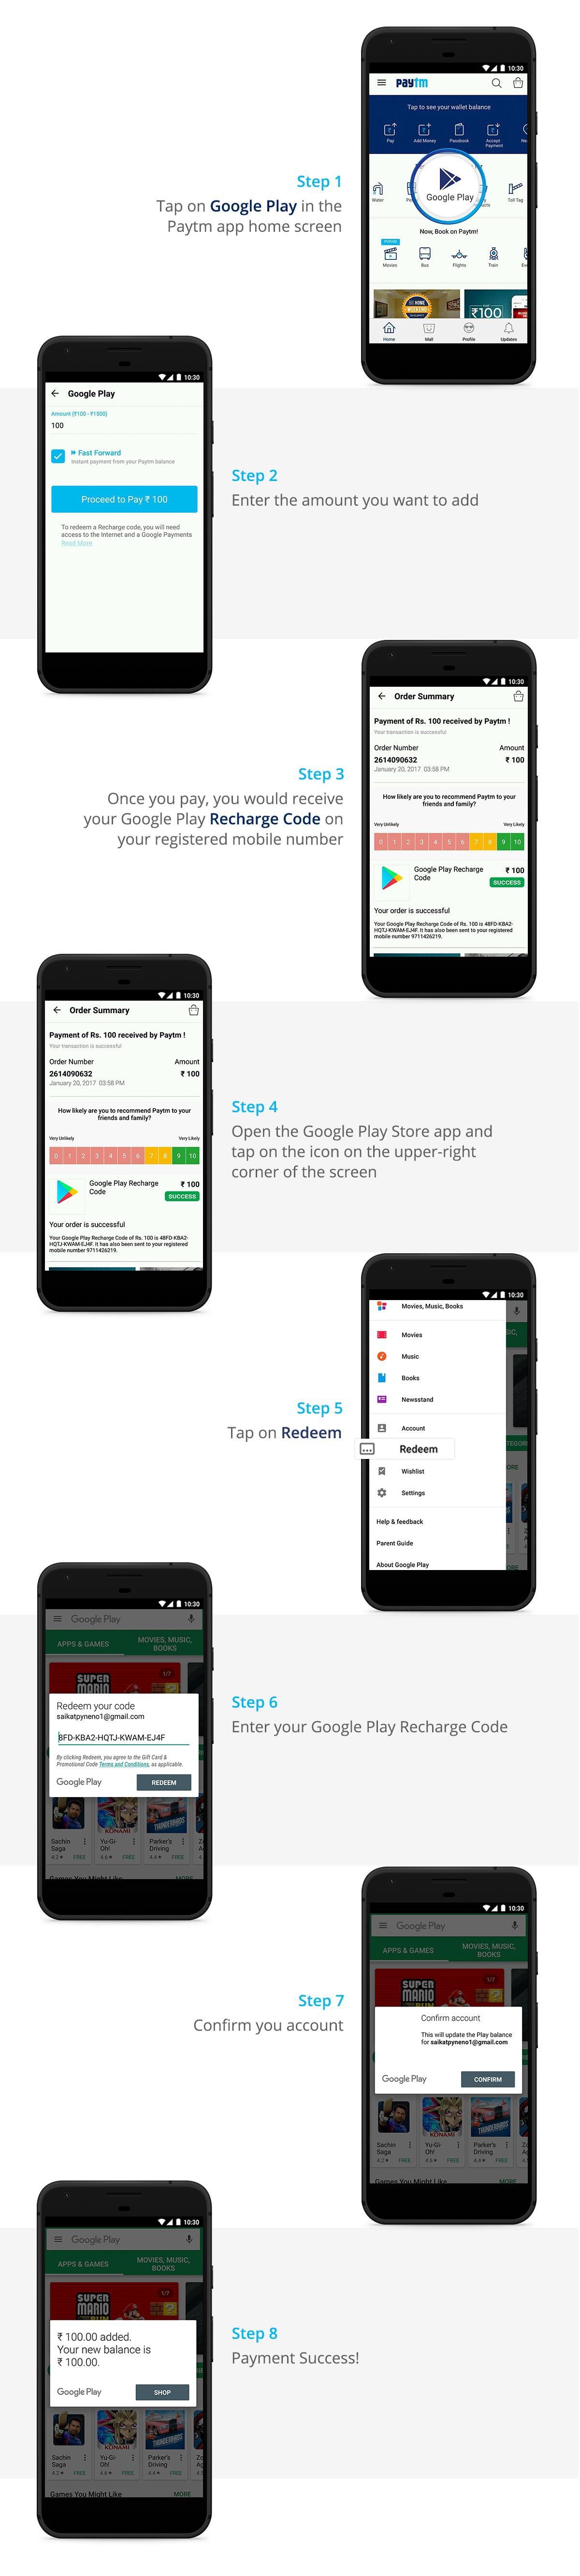 Now recharge your Google Play Account on Paytm - Paytm Blog